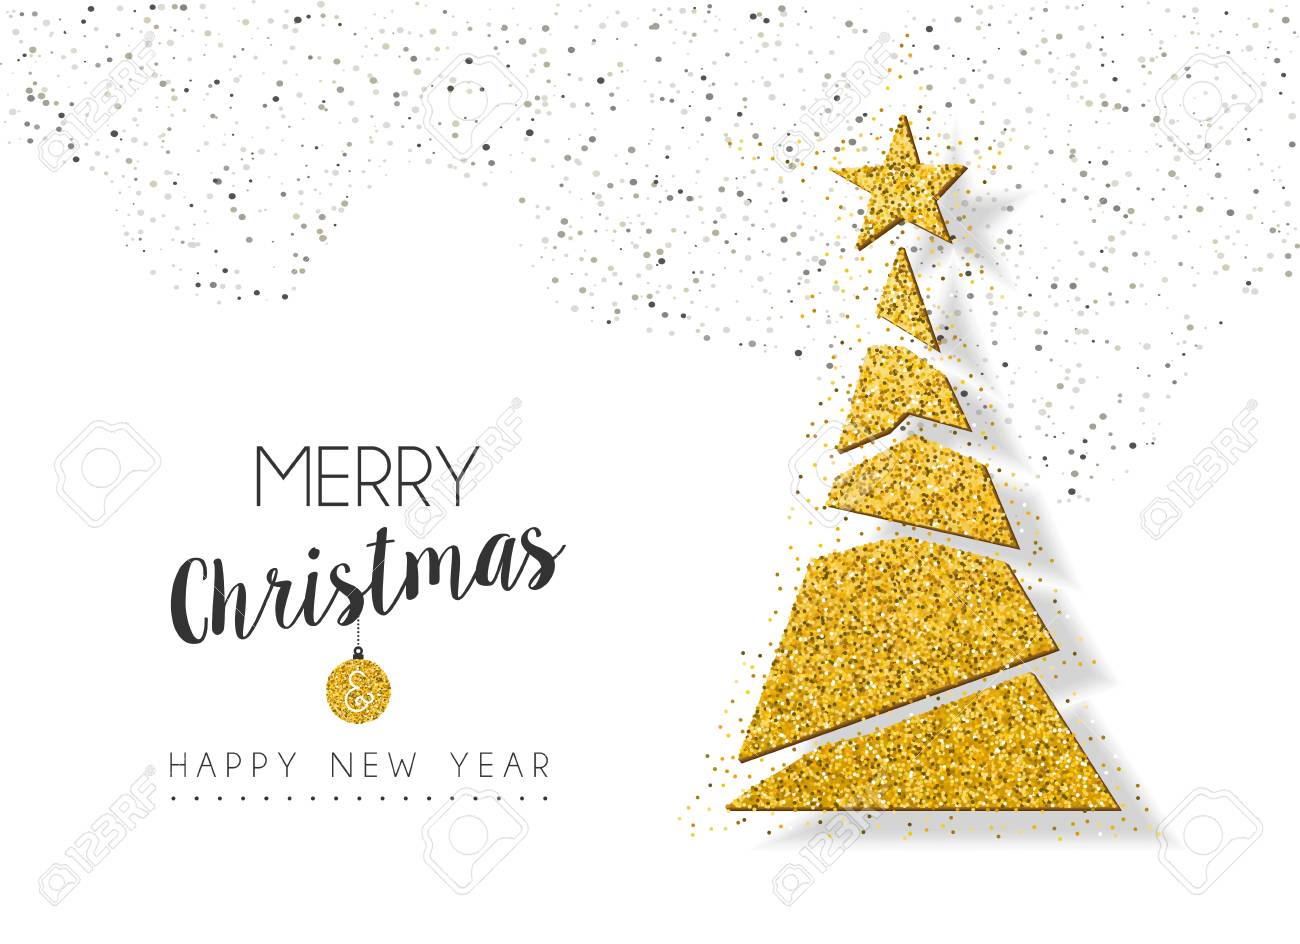 Merry Christmas and happy New Year gold xmas pine tree ornament made of golden glitter dust, holiday greeting card design. EPS10 vector. - 86133552